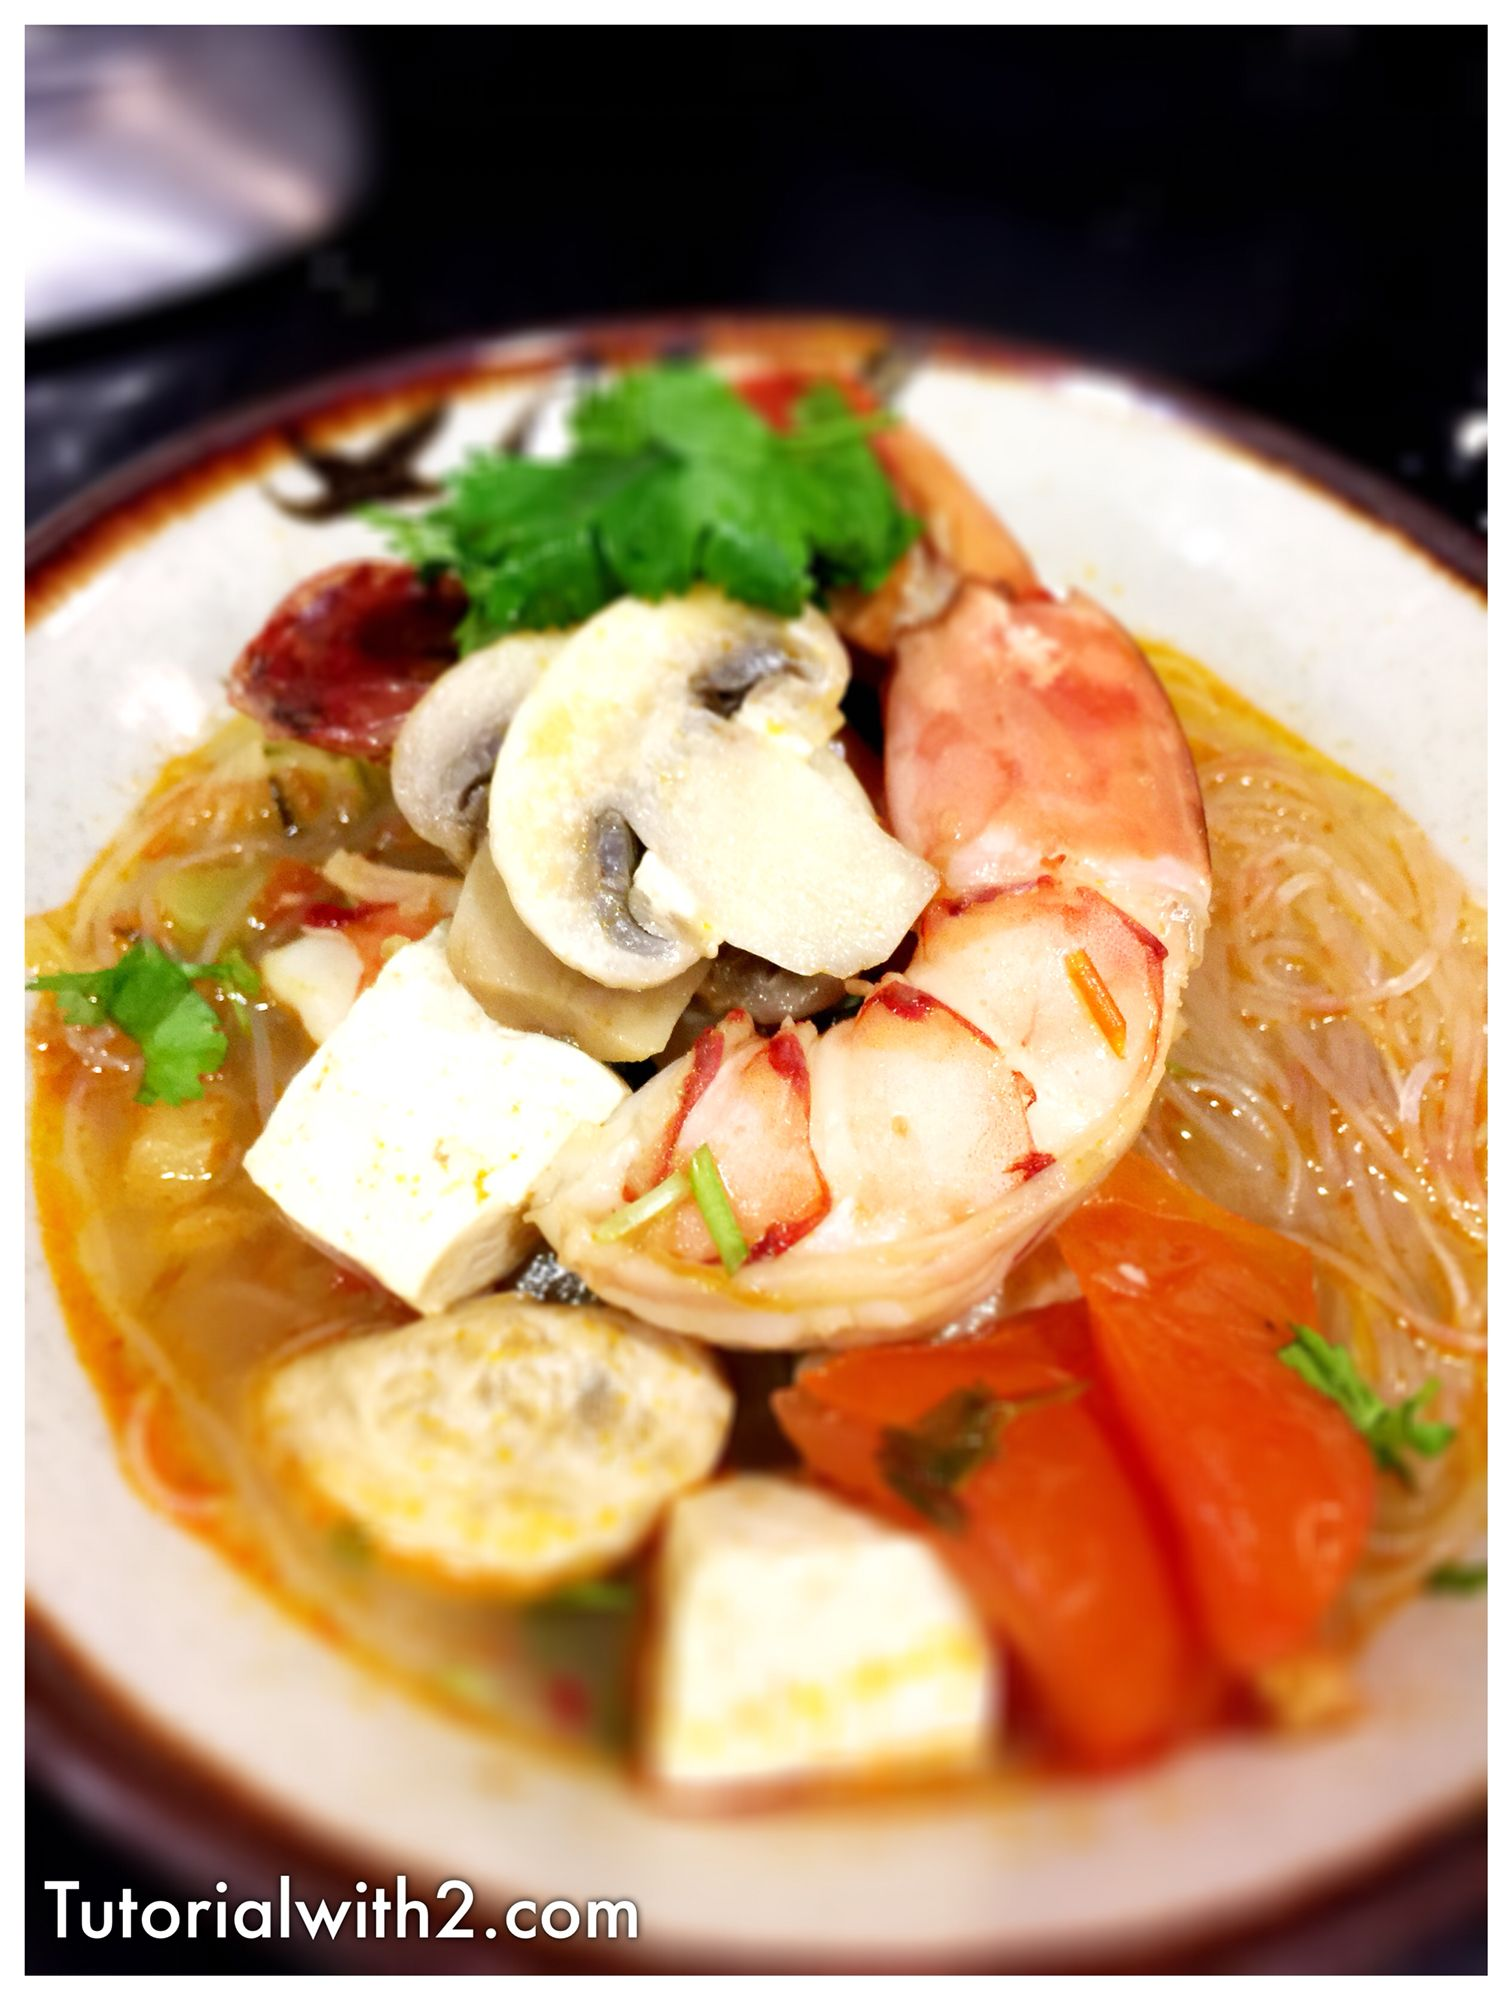 Delicious Tom Yum Soup Recipe  www.tutorialwith2.com